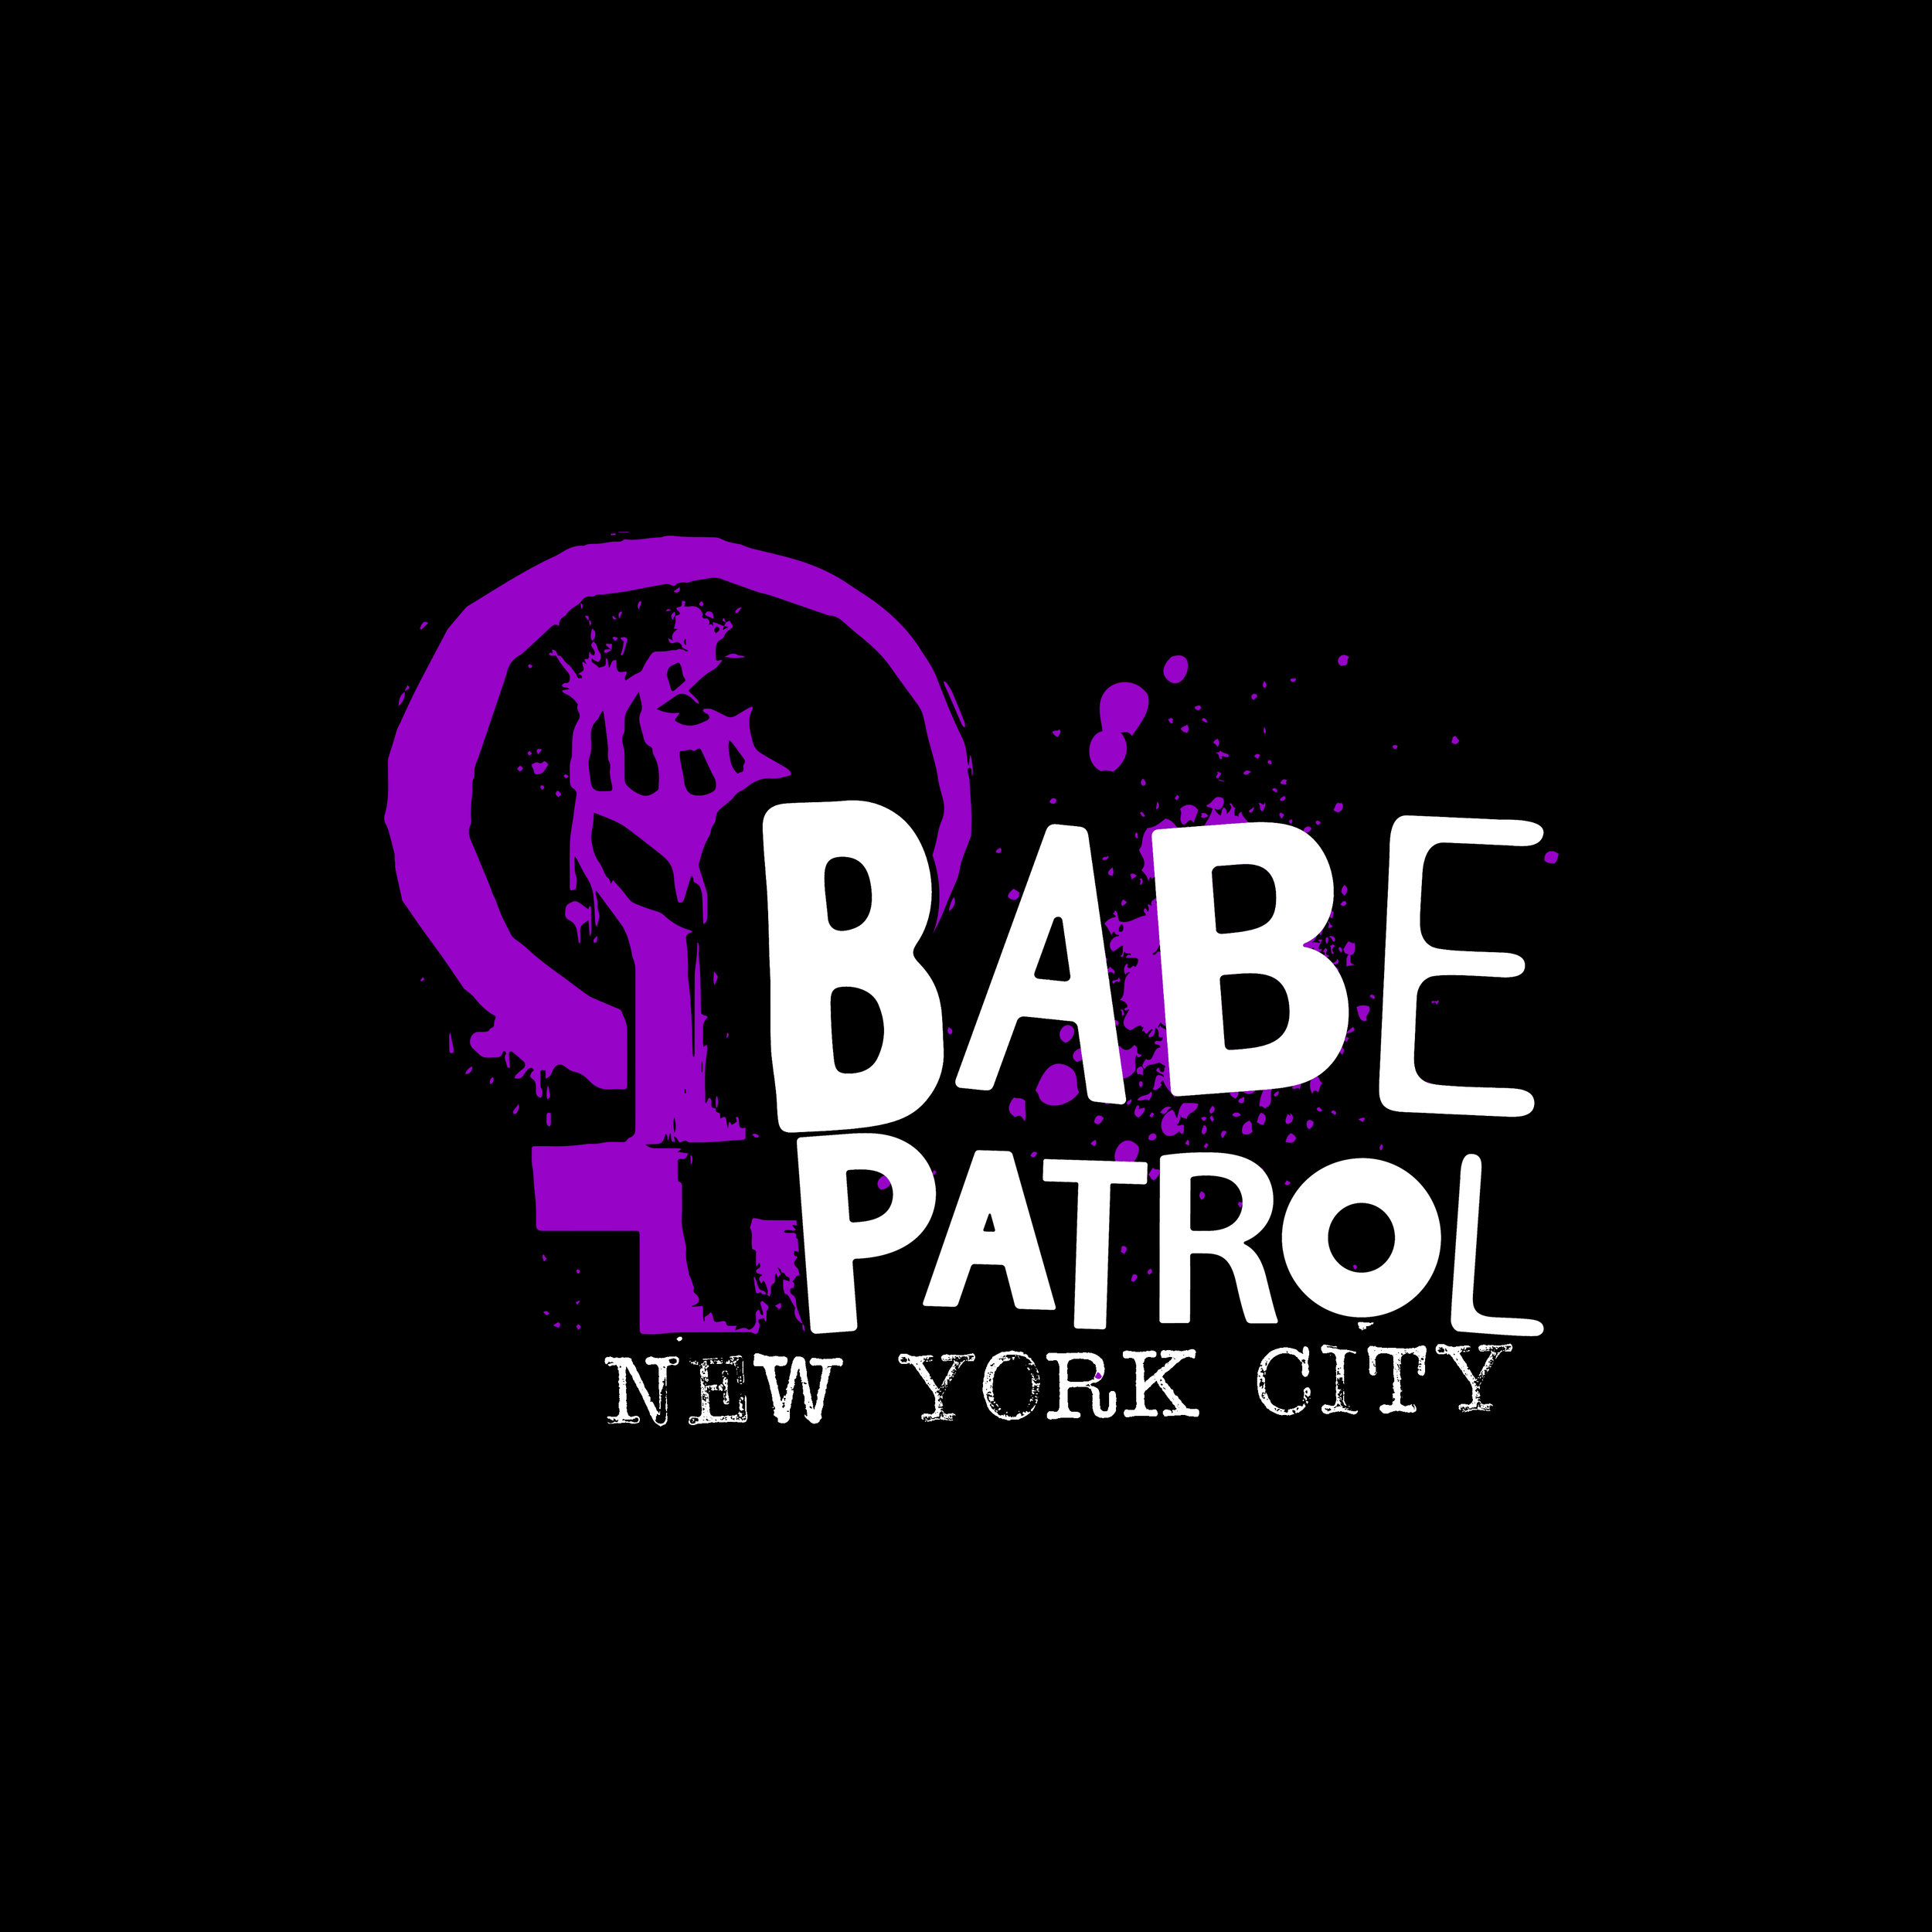 Babe Patrol is a female-fronted melodic punk band from New York City that conjures up the nostalgic glory of 90's. Their live performances feature unrelenting spontaneity and raw punk rock energy, all while vocal harmonies cascade over the melodic compositions.   Whether it's providing commentary on social injustice, unveiling instances of political oppression, or opening up with honest personal catharsis, the lyrics prove to be just as impactful as the dynamic delivery that each vocal line demands.   Over the last two years the band has released 2 EP's and 1 LP, but continues to advance the sonic potential of their music in their upcoming releases.